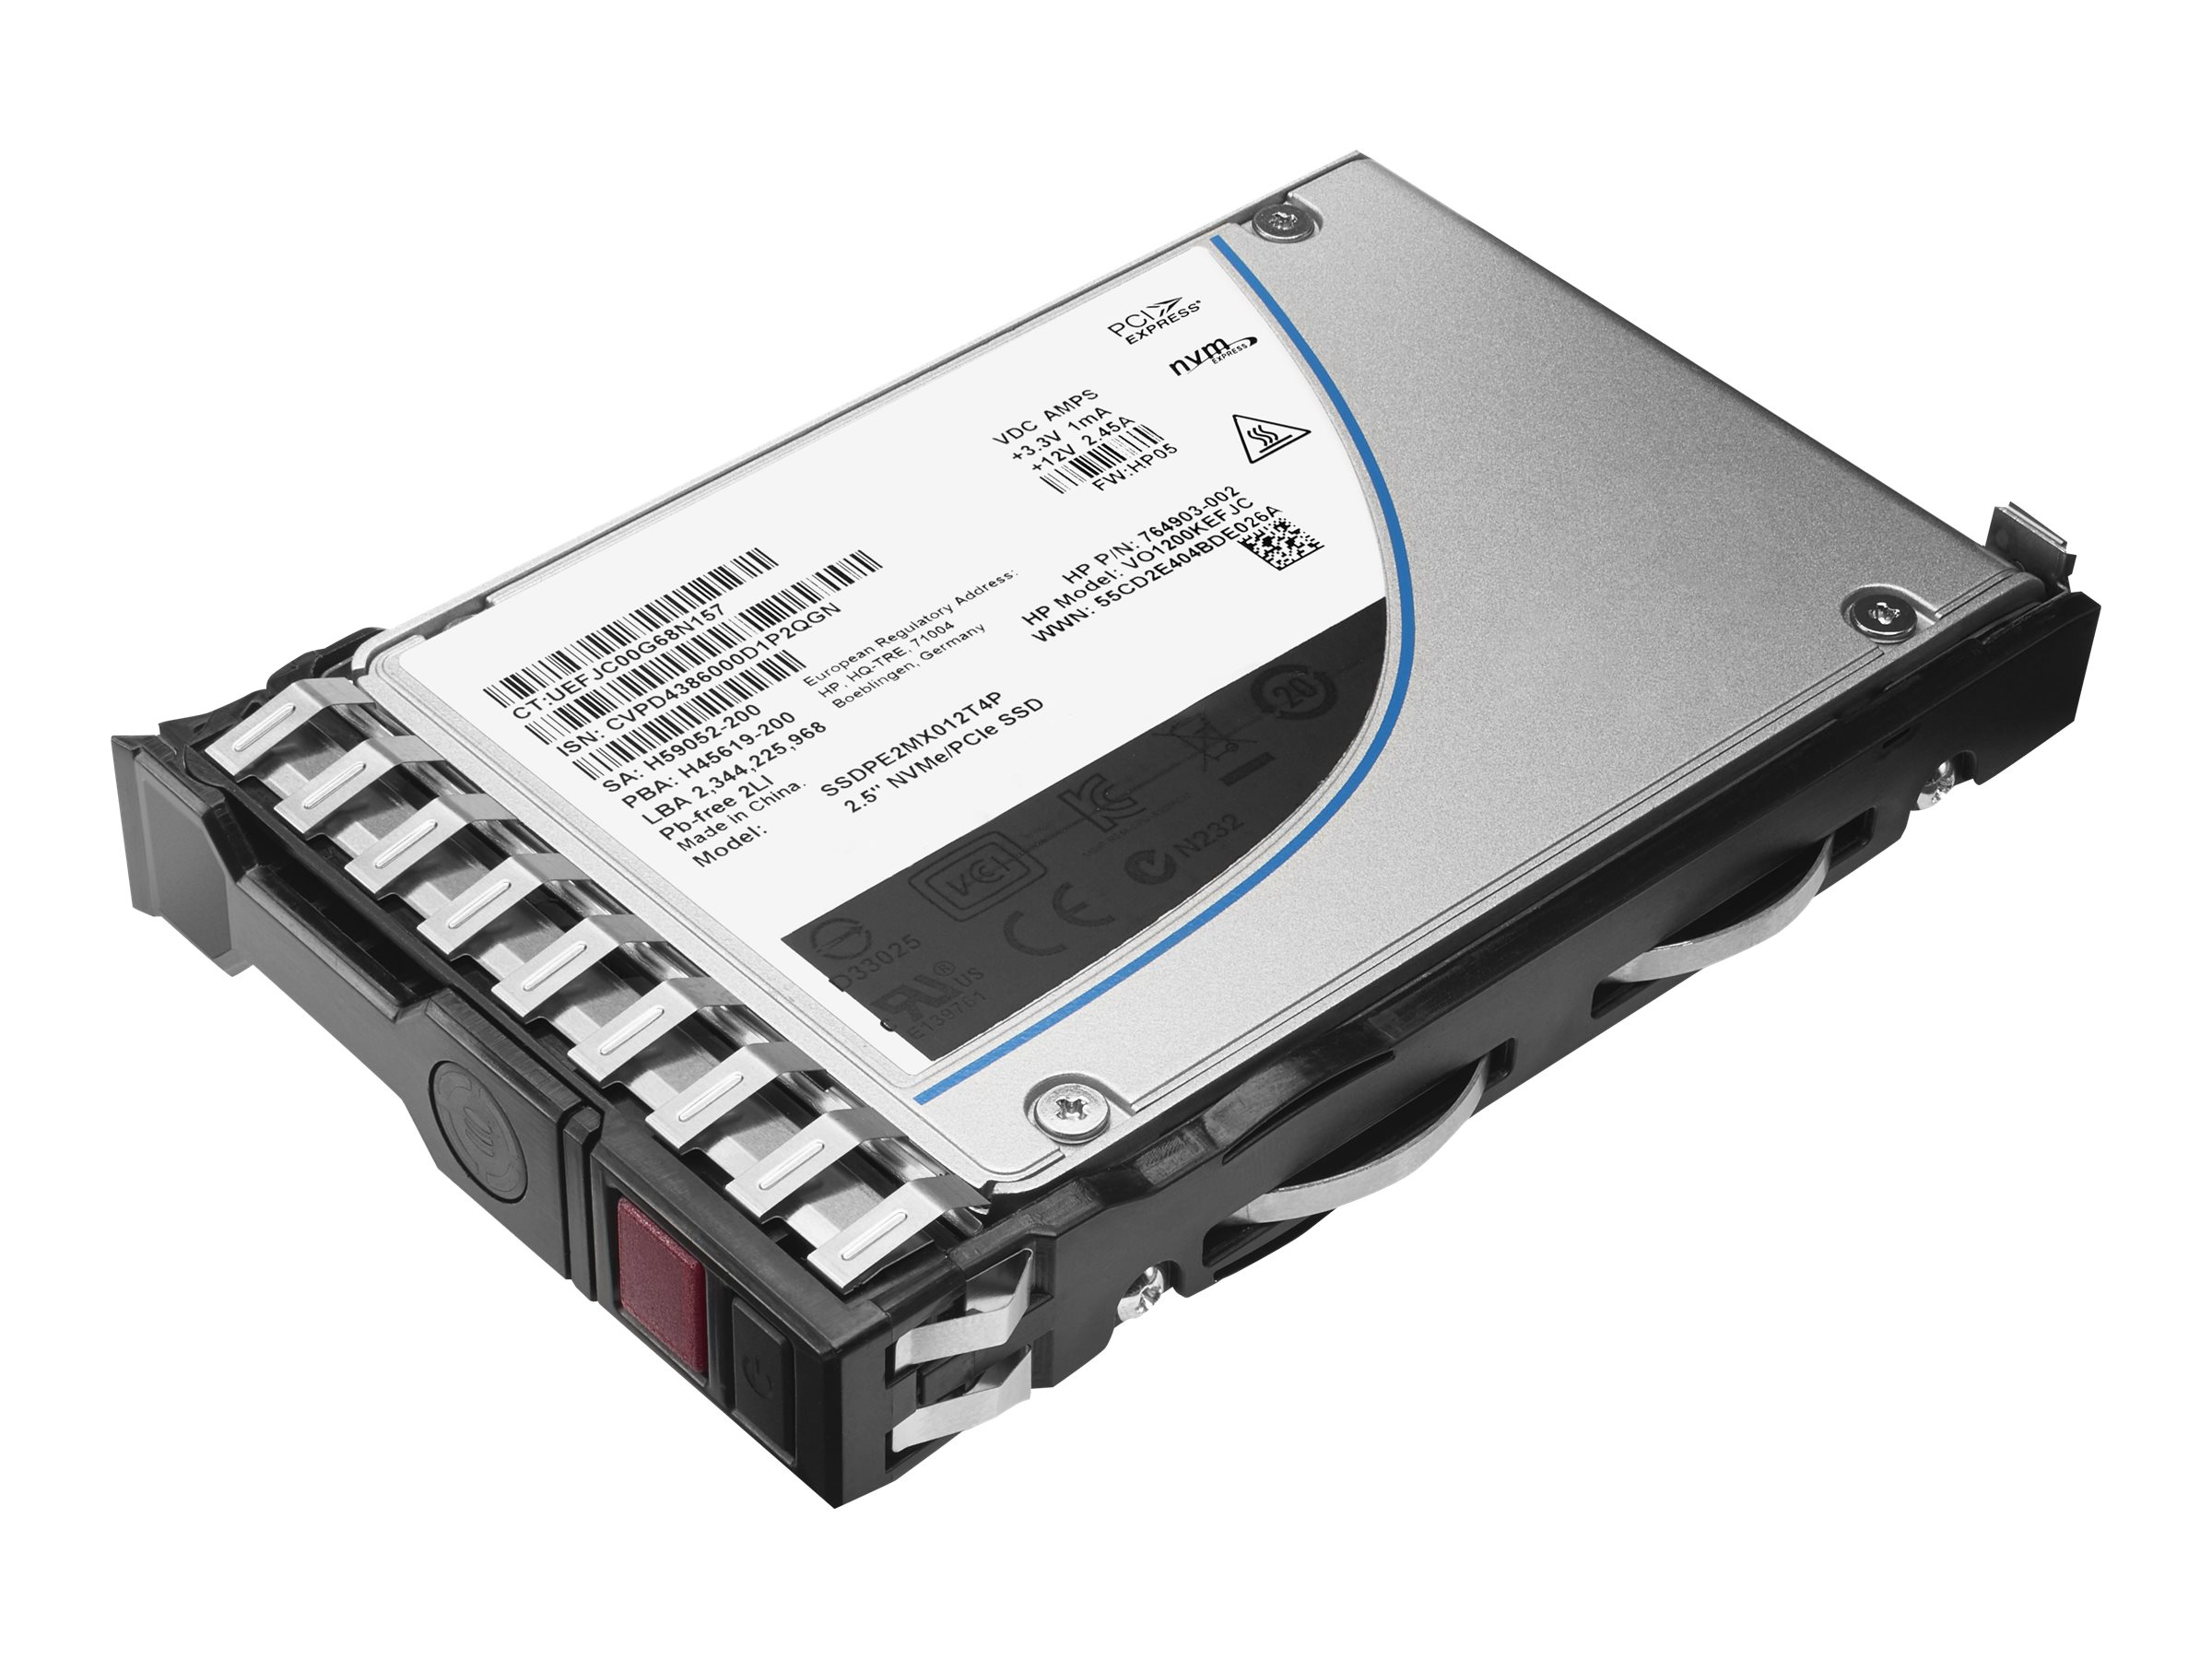 HPE Read Intensive-3 - Solid-State-Disk - 3.84 TB - Hot-Swap - 6.4 cm SFF (2.5